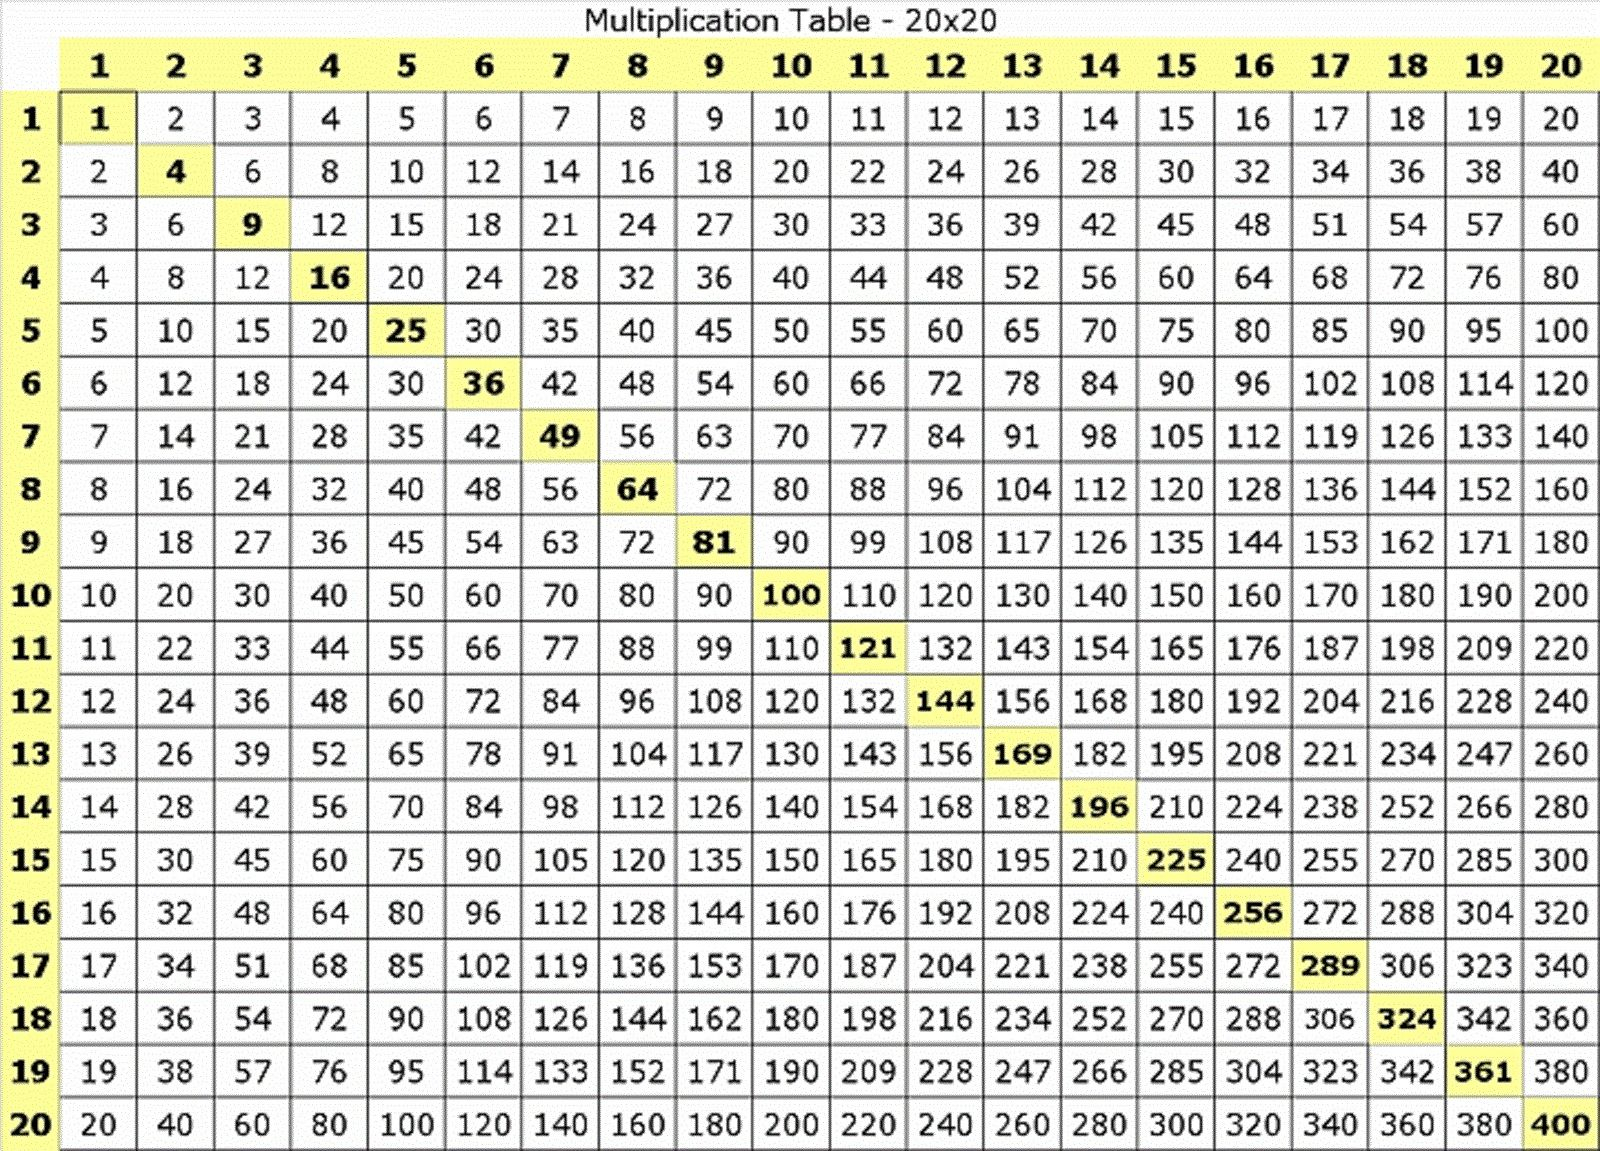 Times Table Chart 1-20 Image | Multiplication Table